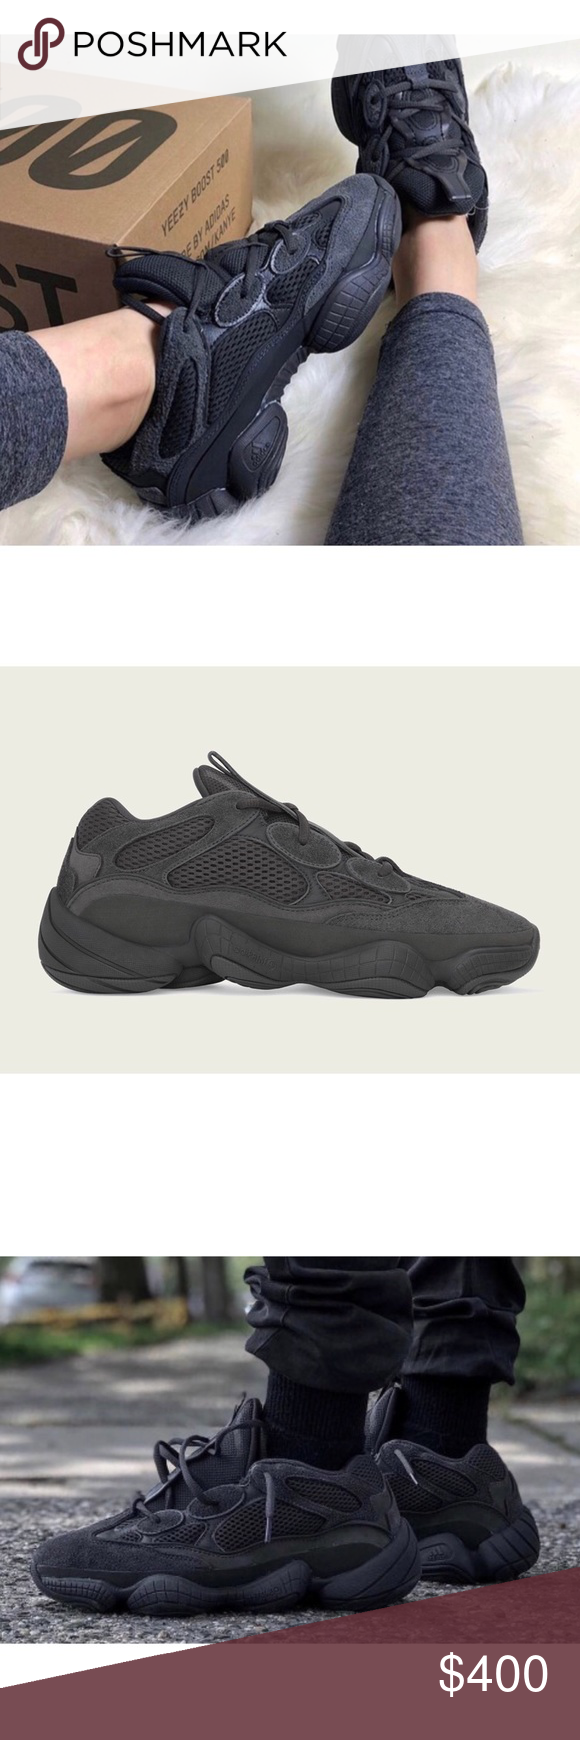 Yeezy 500 Utility Black Authentic Never worn Size 5 men 6 6.5 women s Yeezy  Shoes Sneakers 0b60f4a645